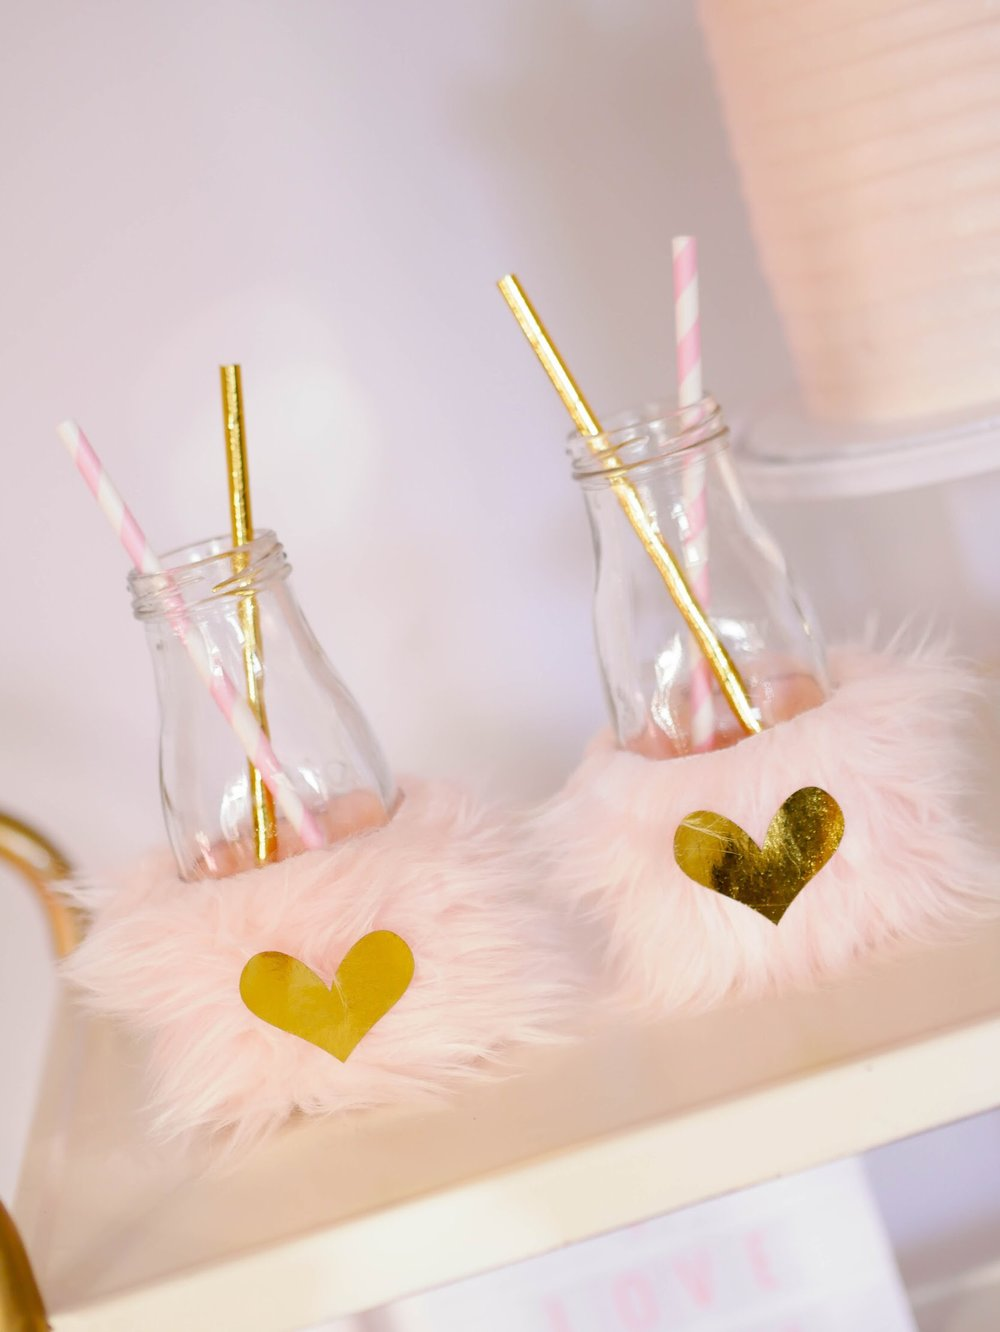 Love this use of the golden straws and faux fur wrappers!